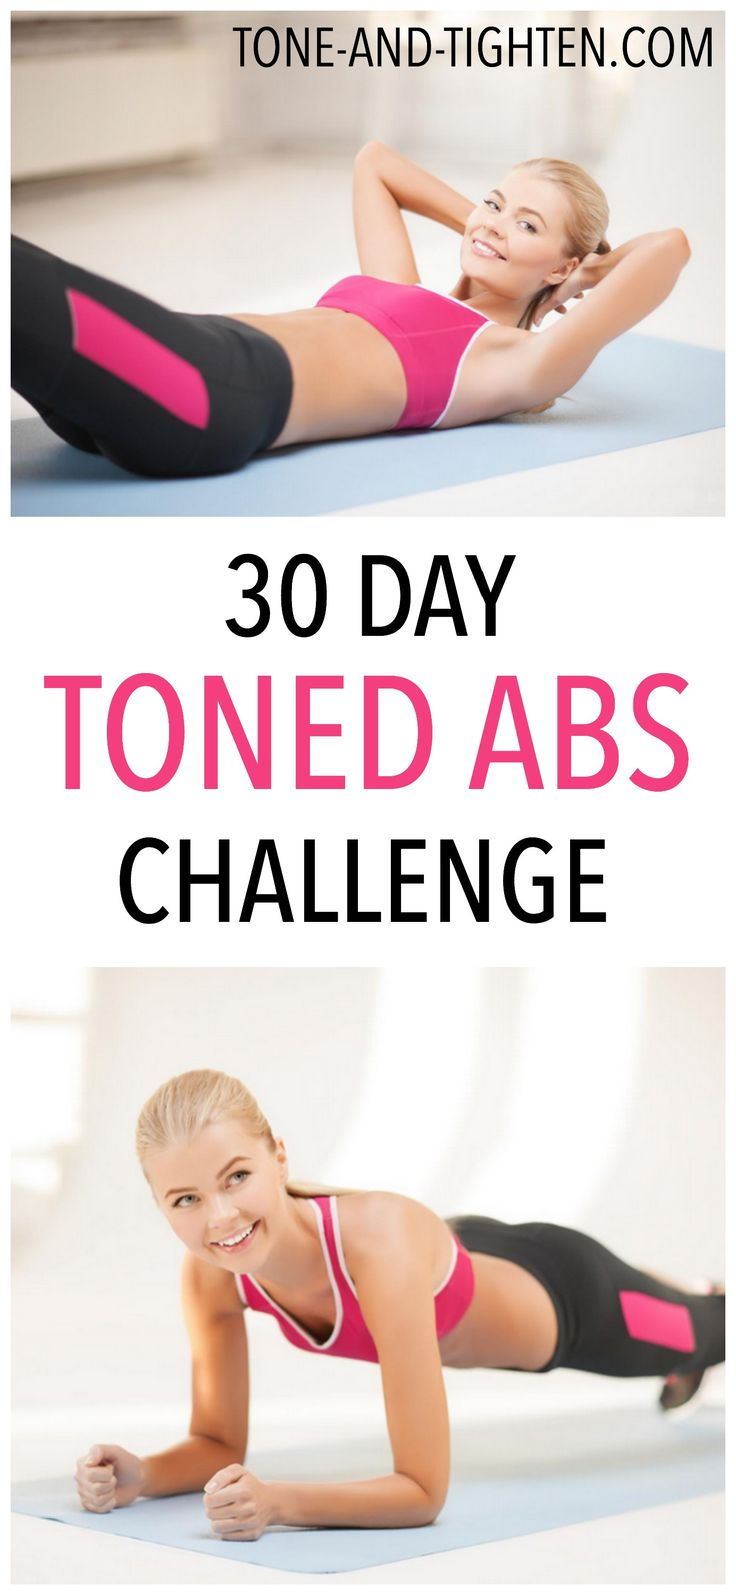 30 Day Toned Abs Challenge on Tone-and-Tighten.com